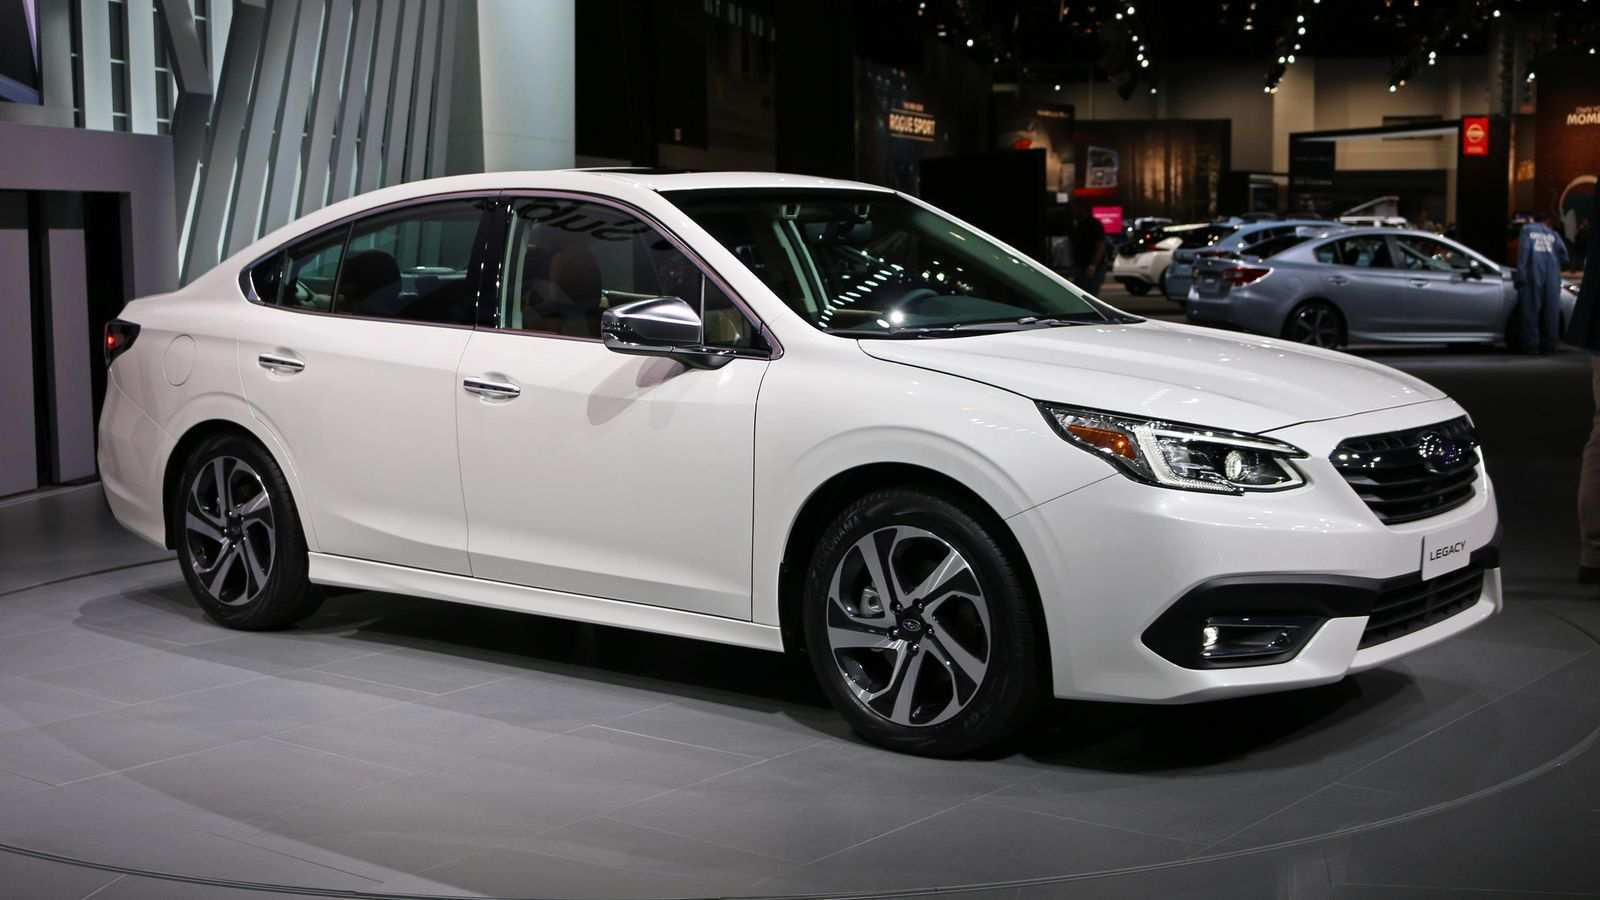 51 The Best Subaru New Legacy 2020 Price